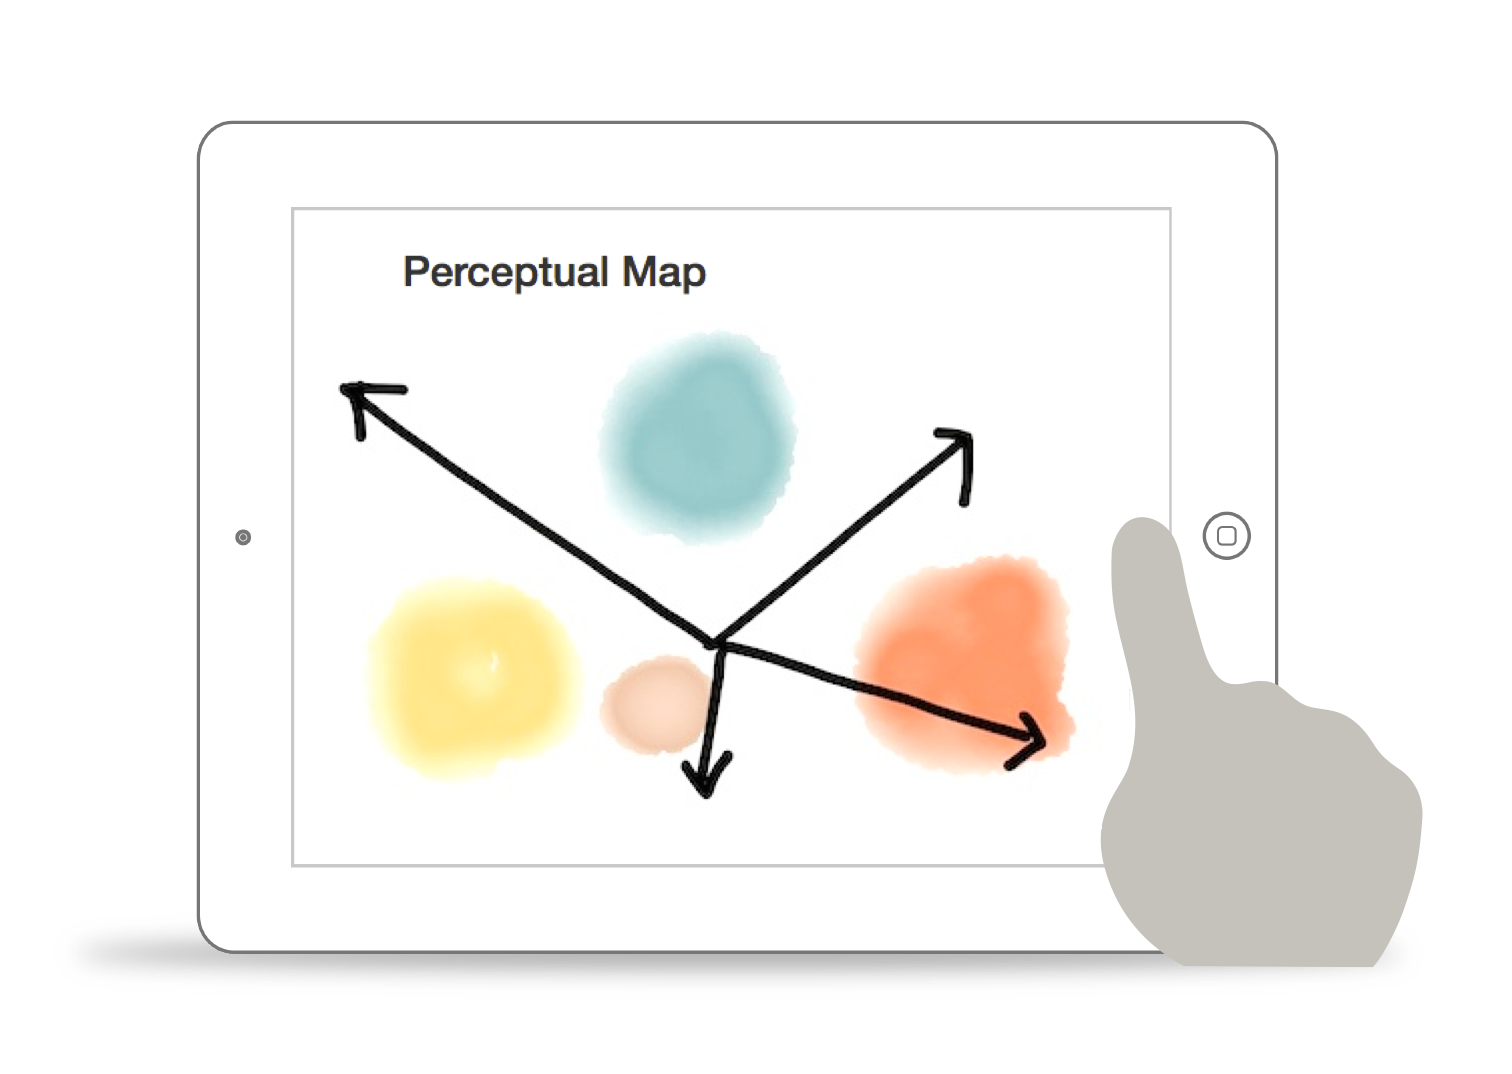 Perceptual Mapping plot